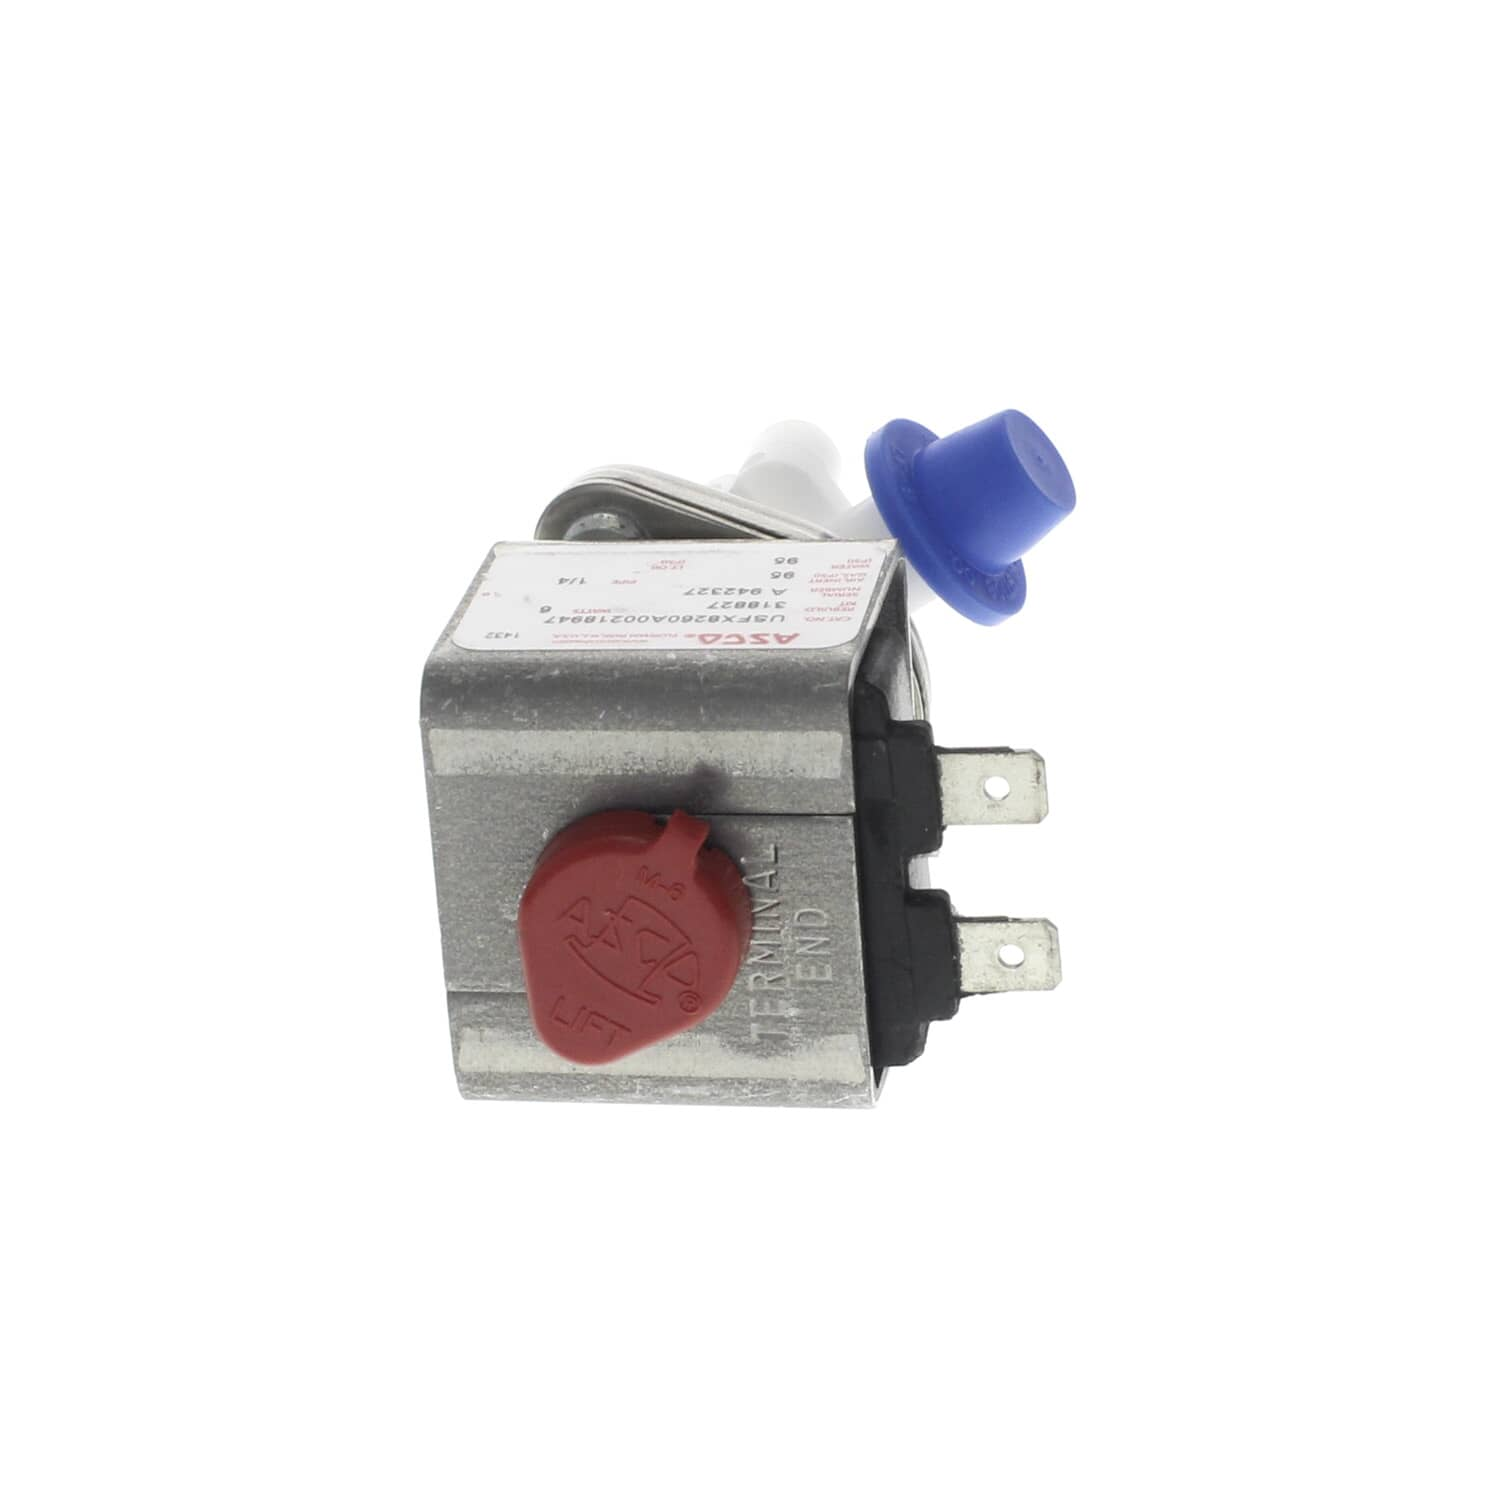 FBD 46-0103-0003 SOLUTION/CO2 SOLENOID